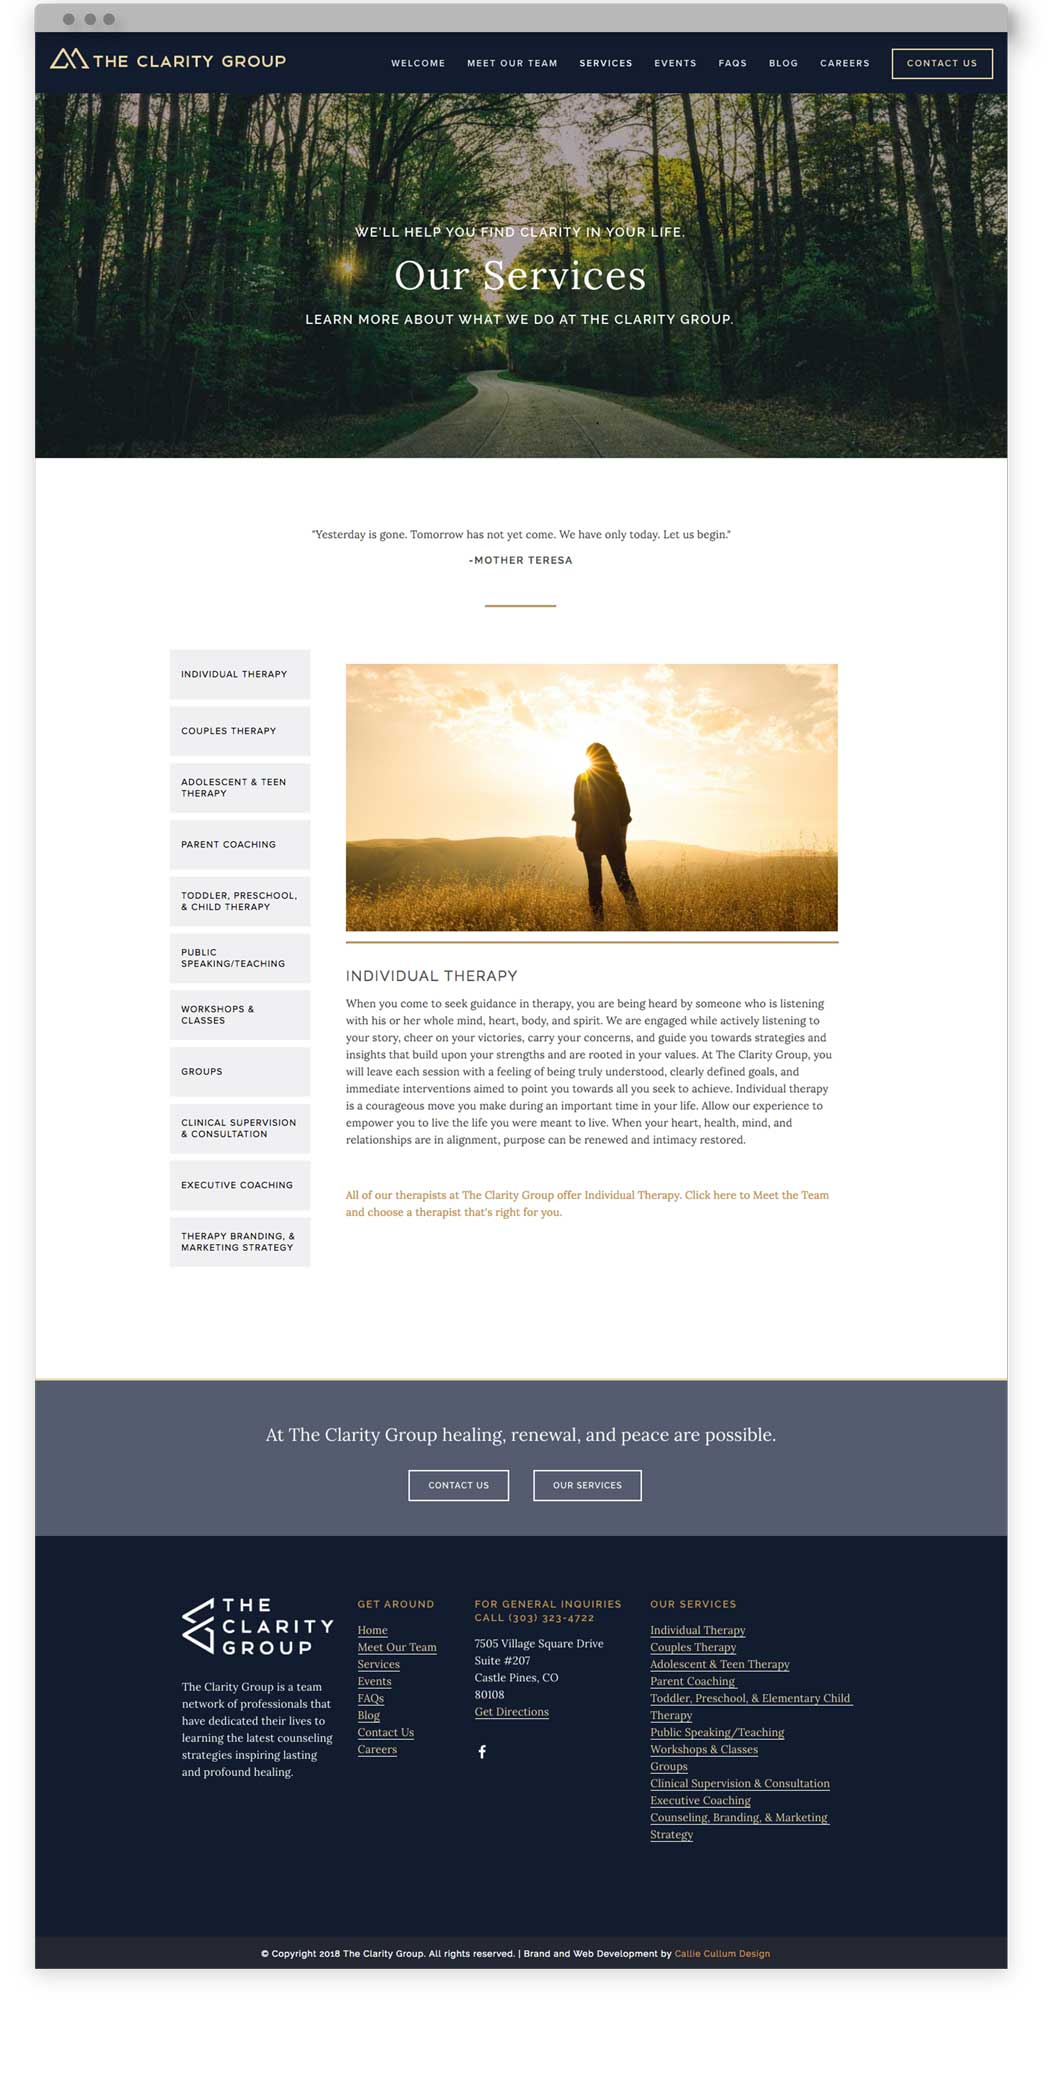 Website design for The Clarity Group, a therapy practice based outside of Denver, Colorado. The design was created by Callie Cullum Design.